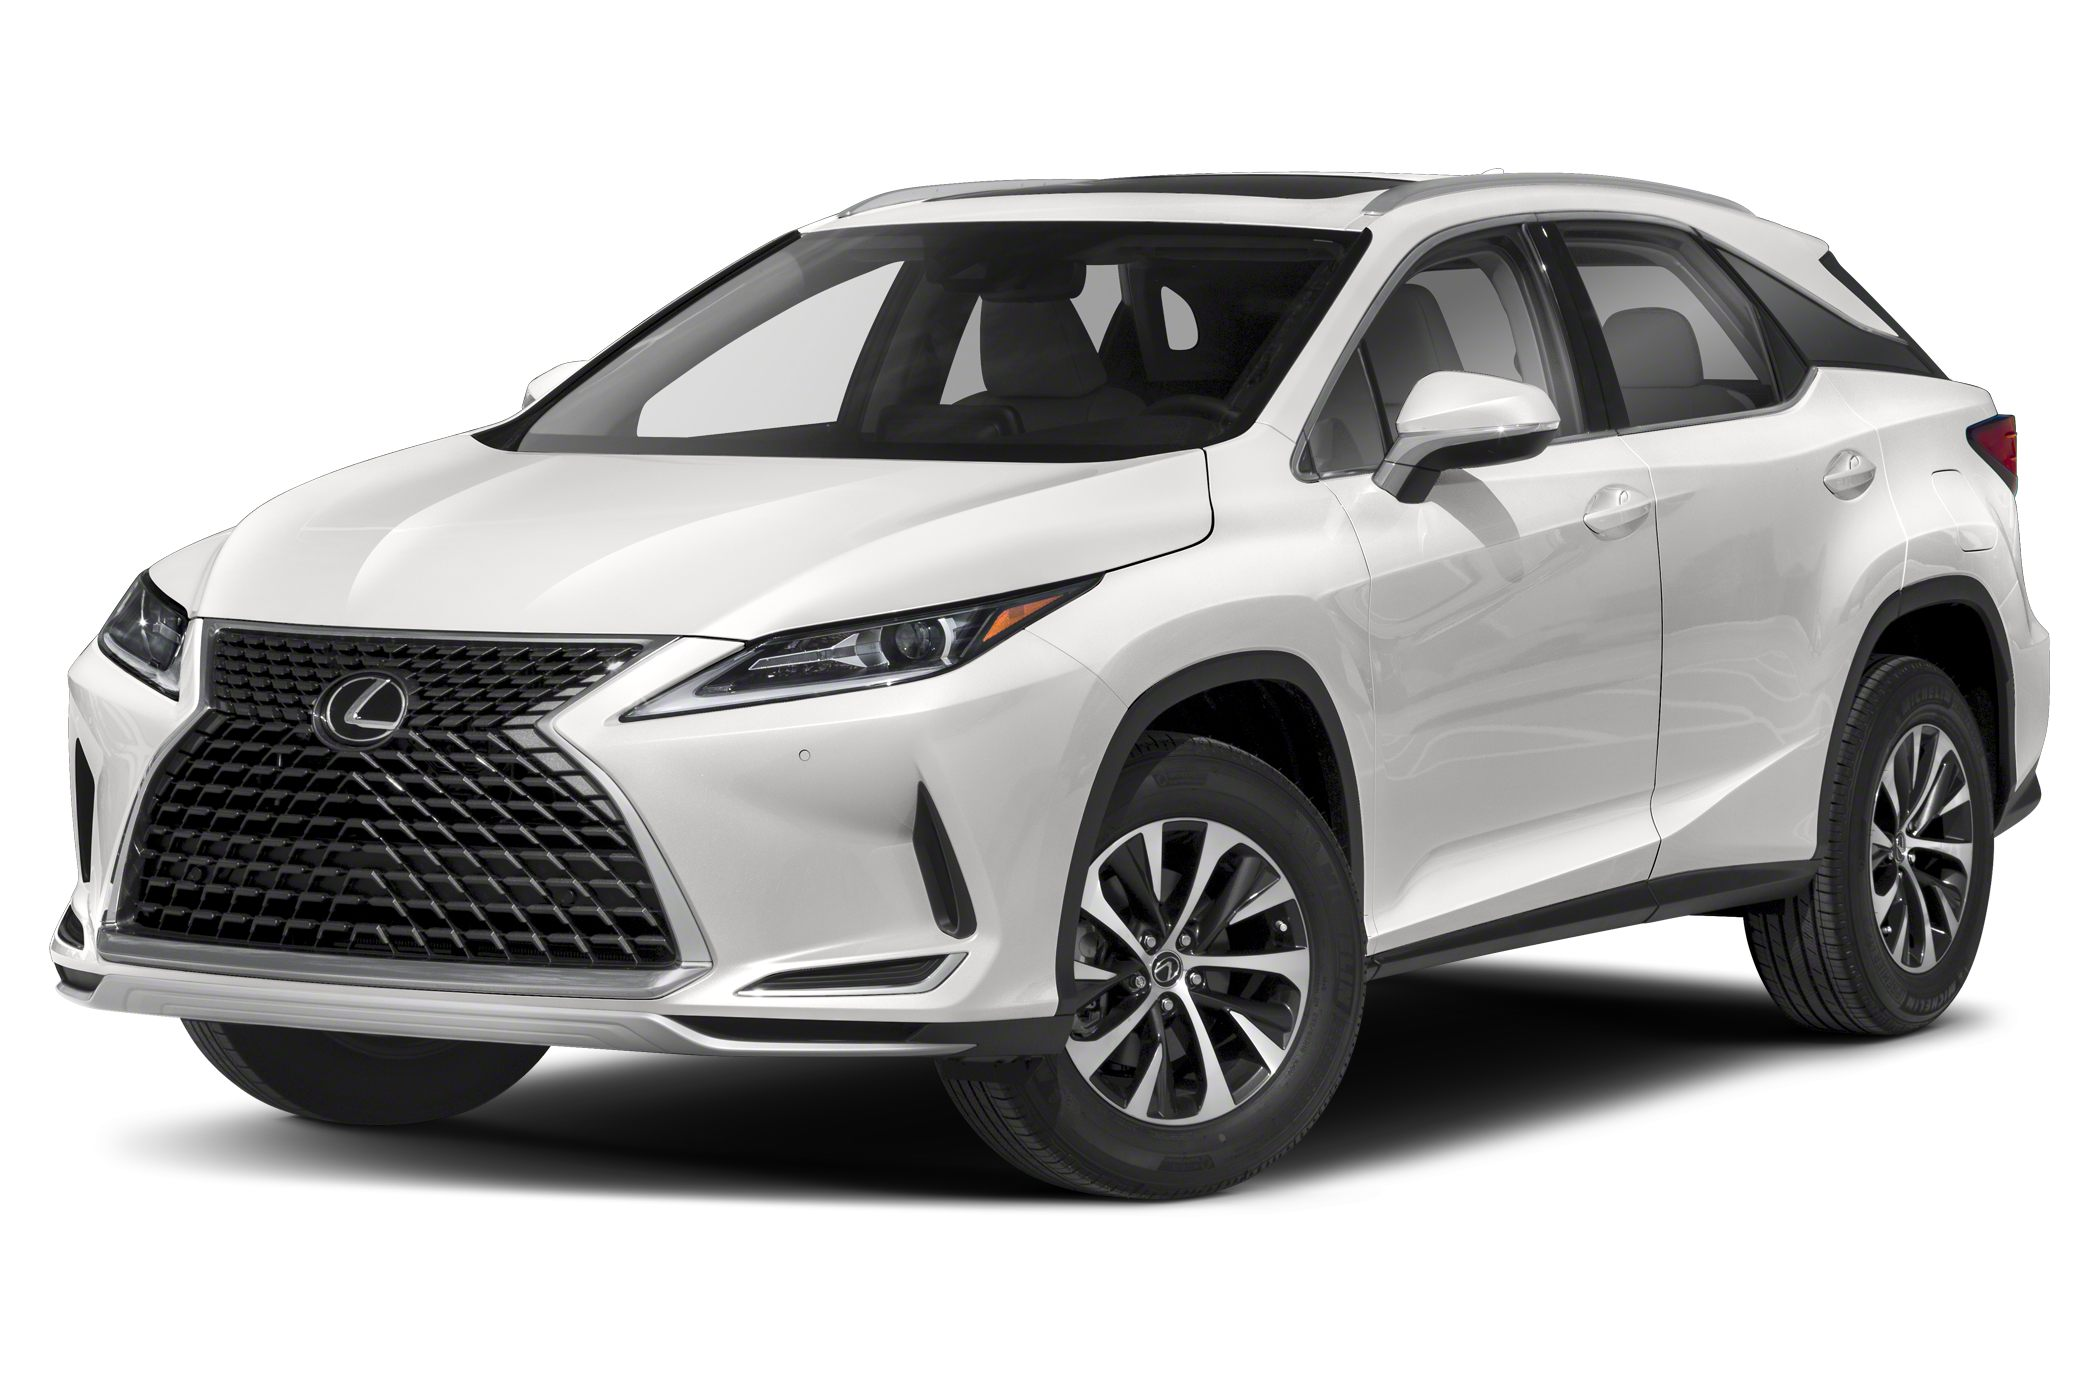 2020 Lexus RX 350 Specs and Review